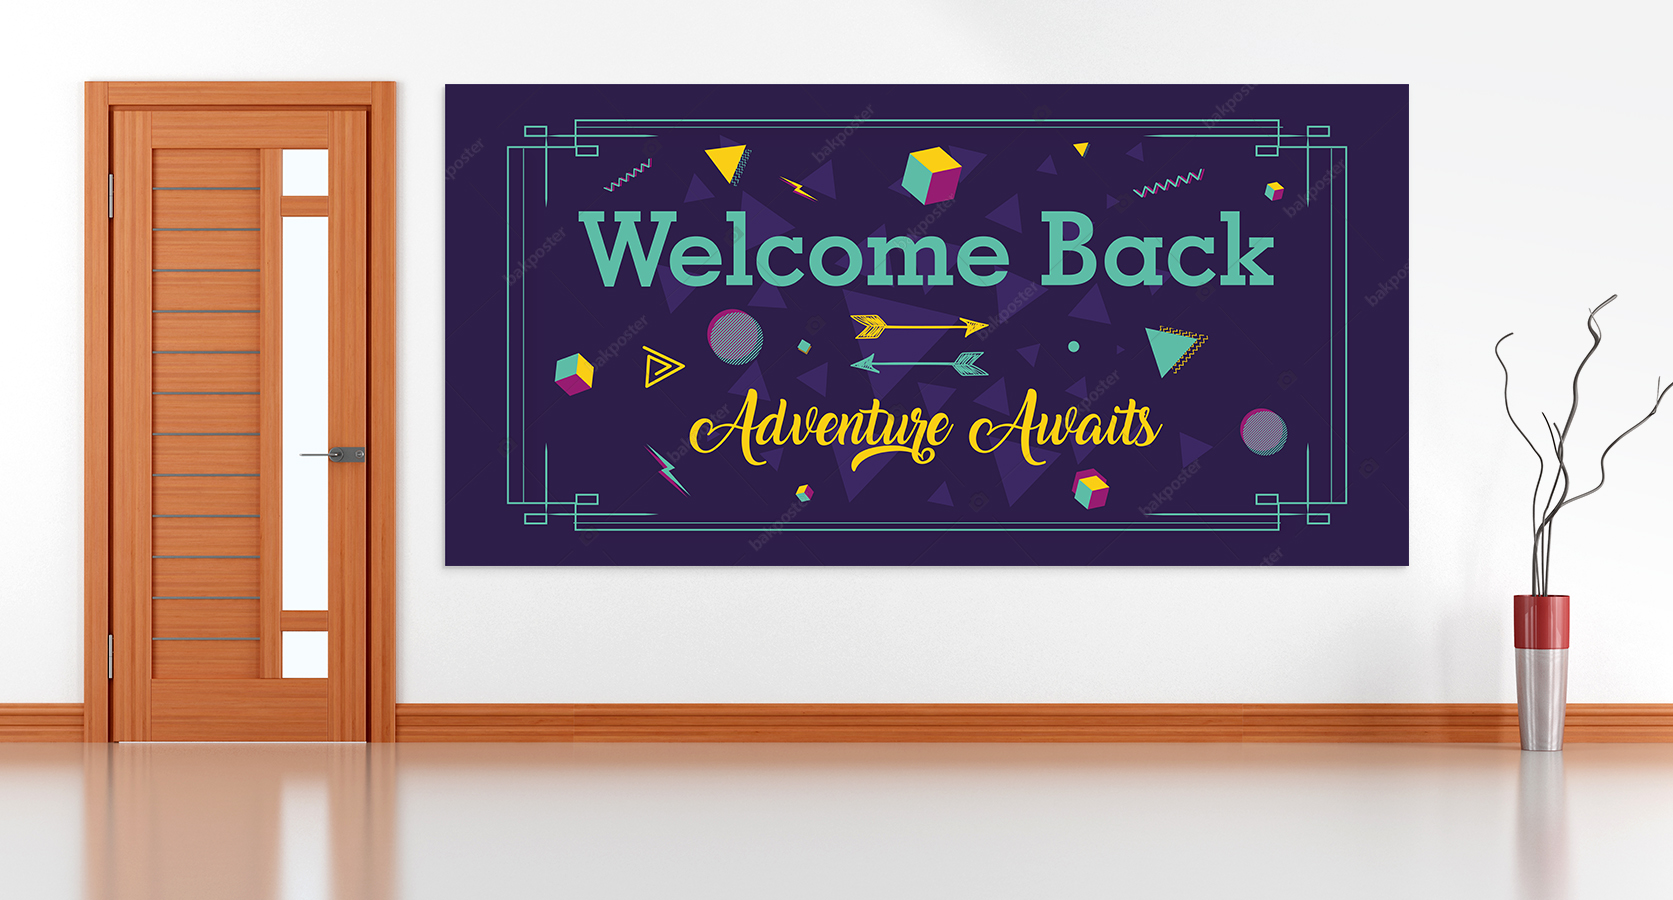 Welcome Back Adventure Auaits Görsel Poster